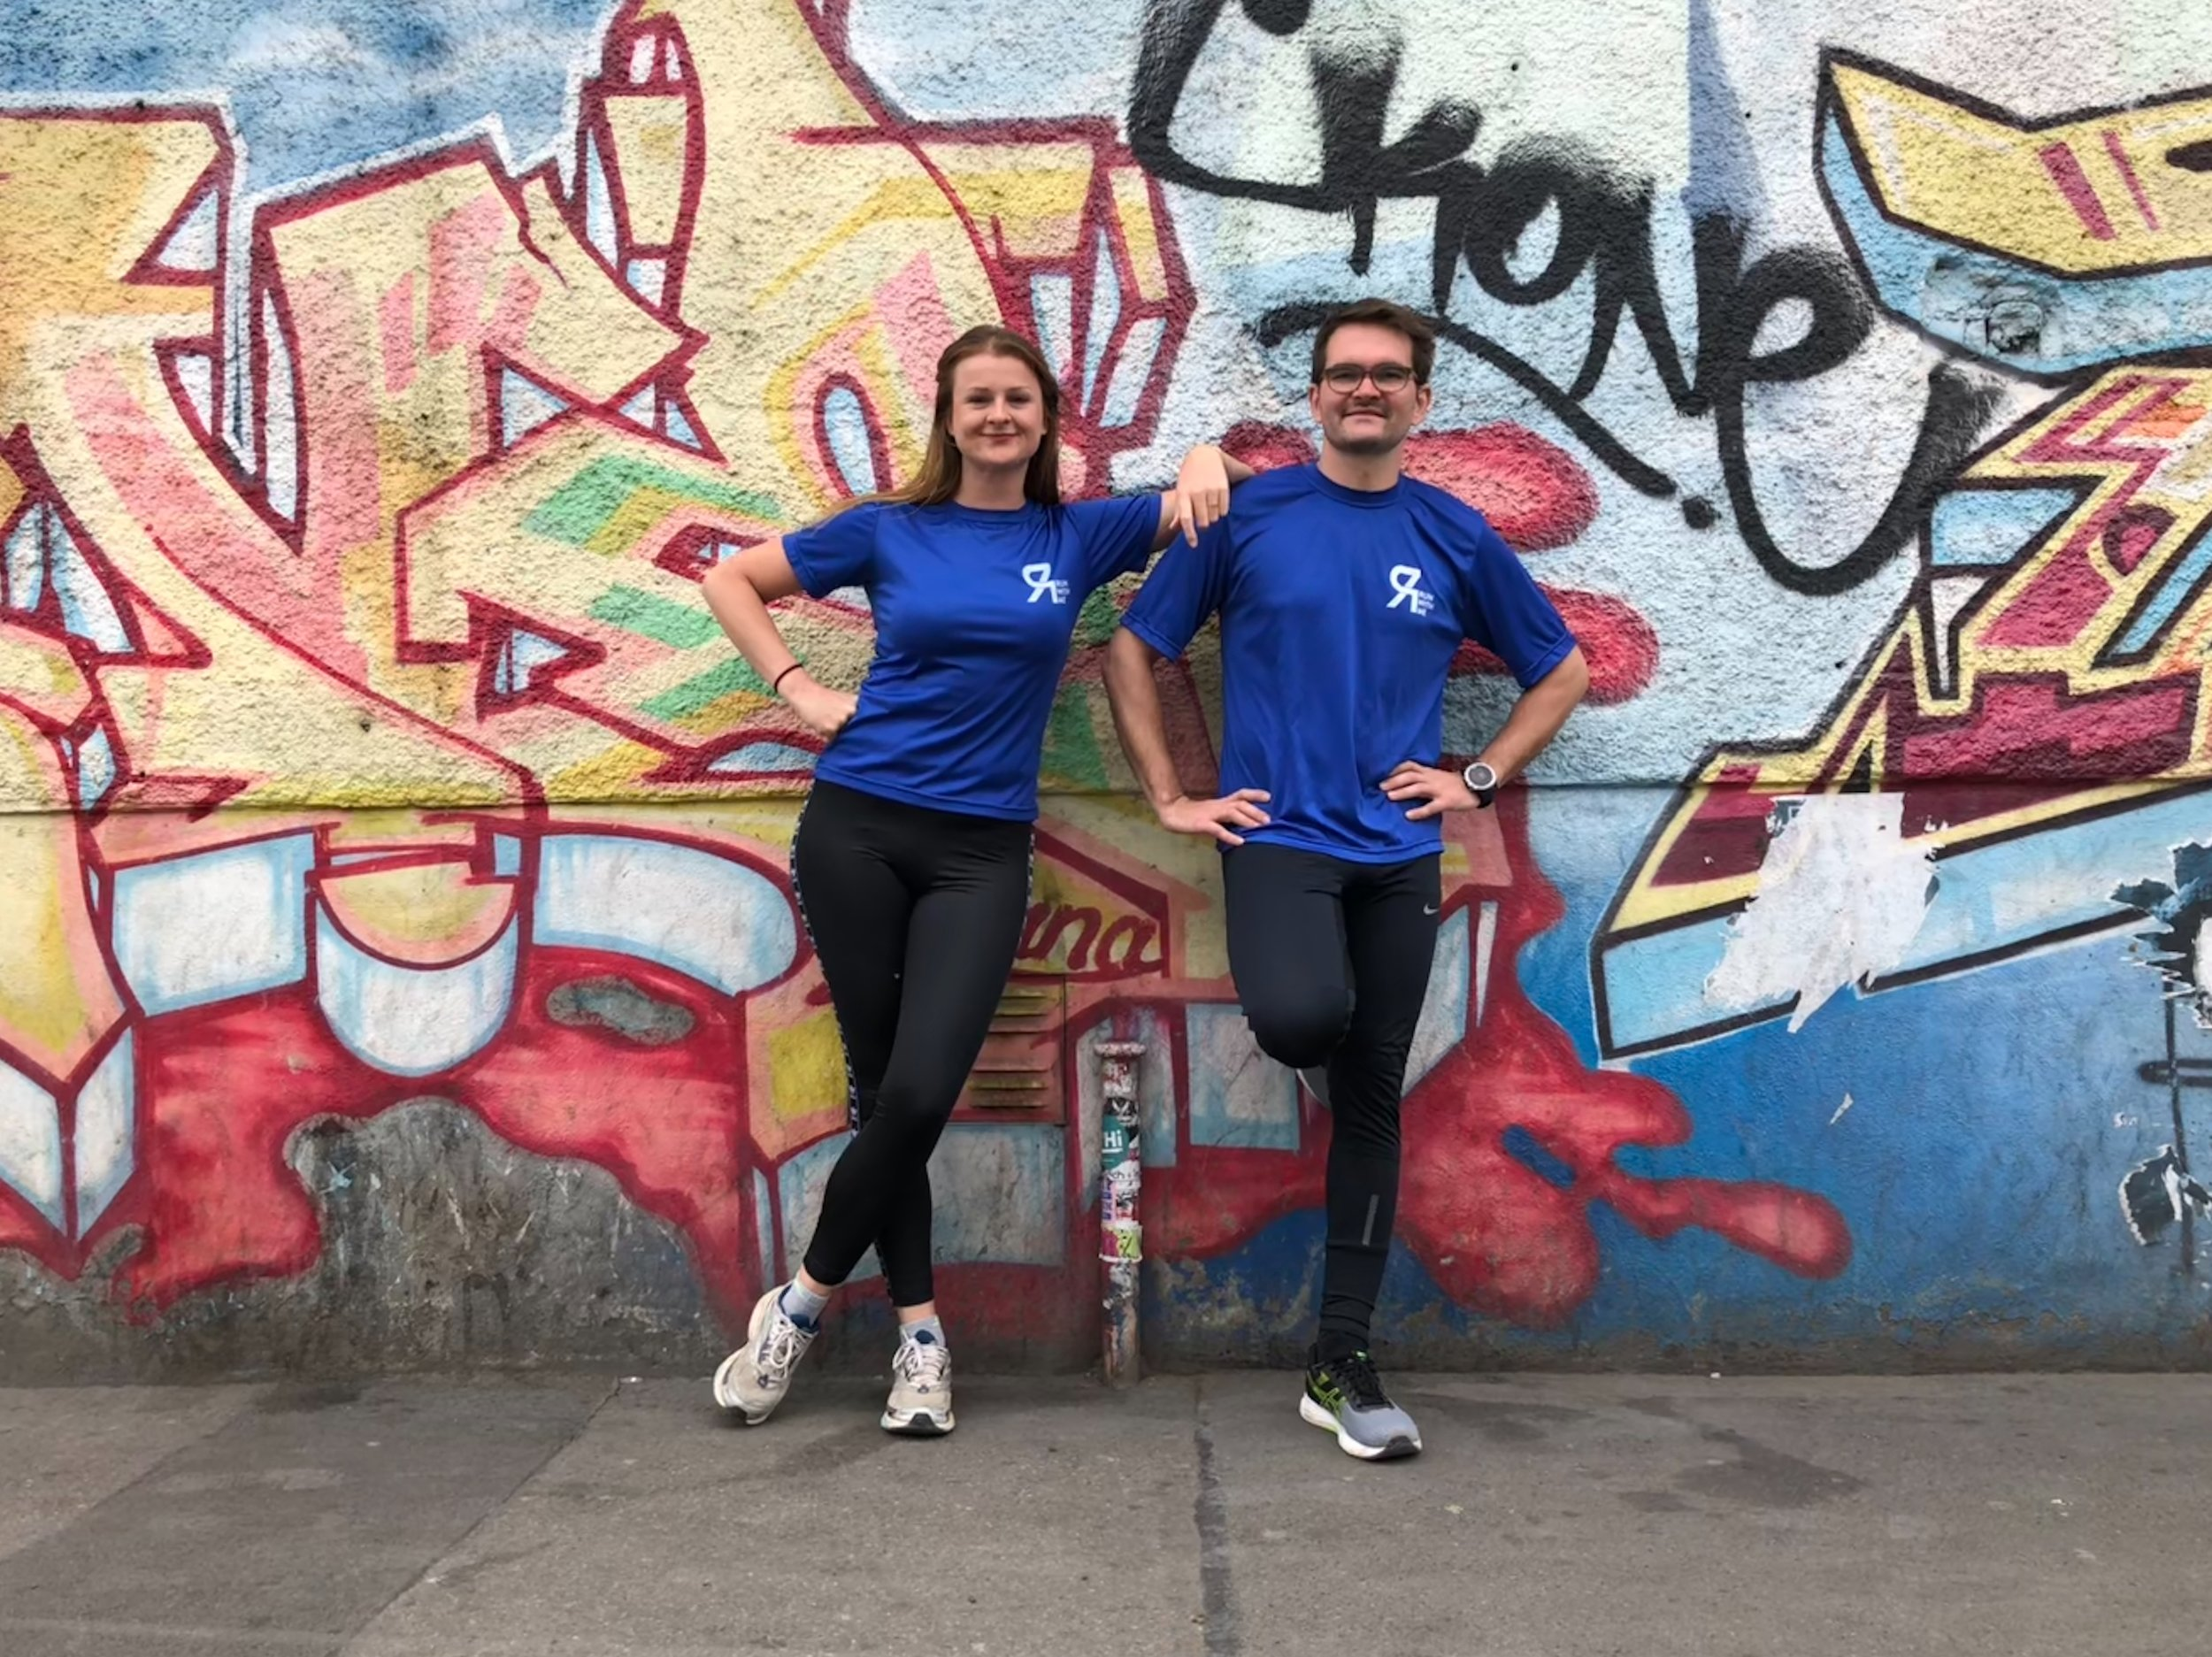 Katharina and Frank will be leading runs in Zurich from May 2018